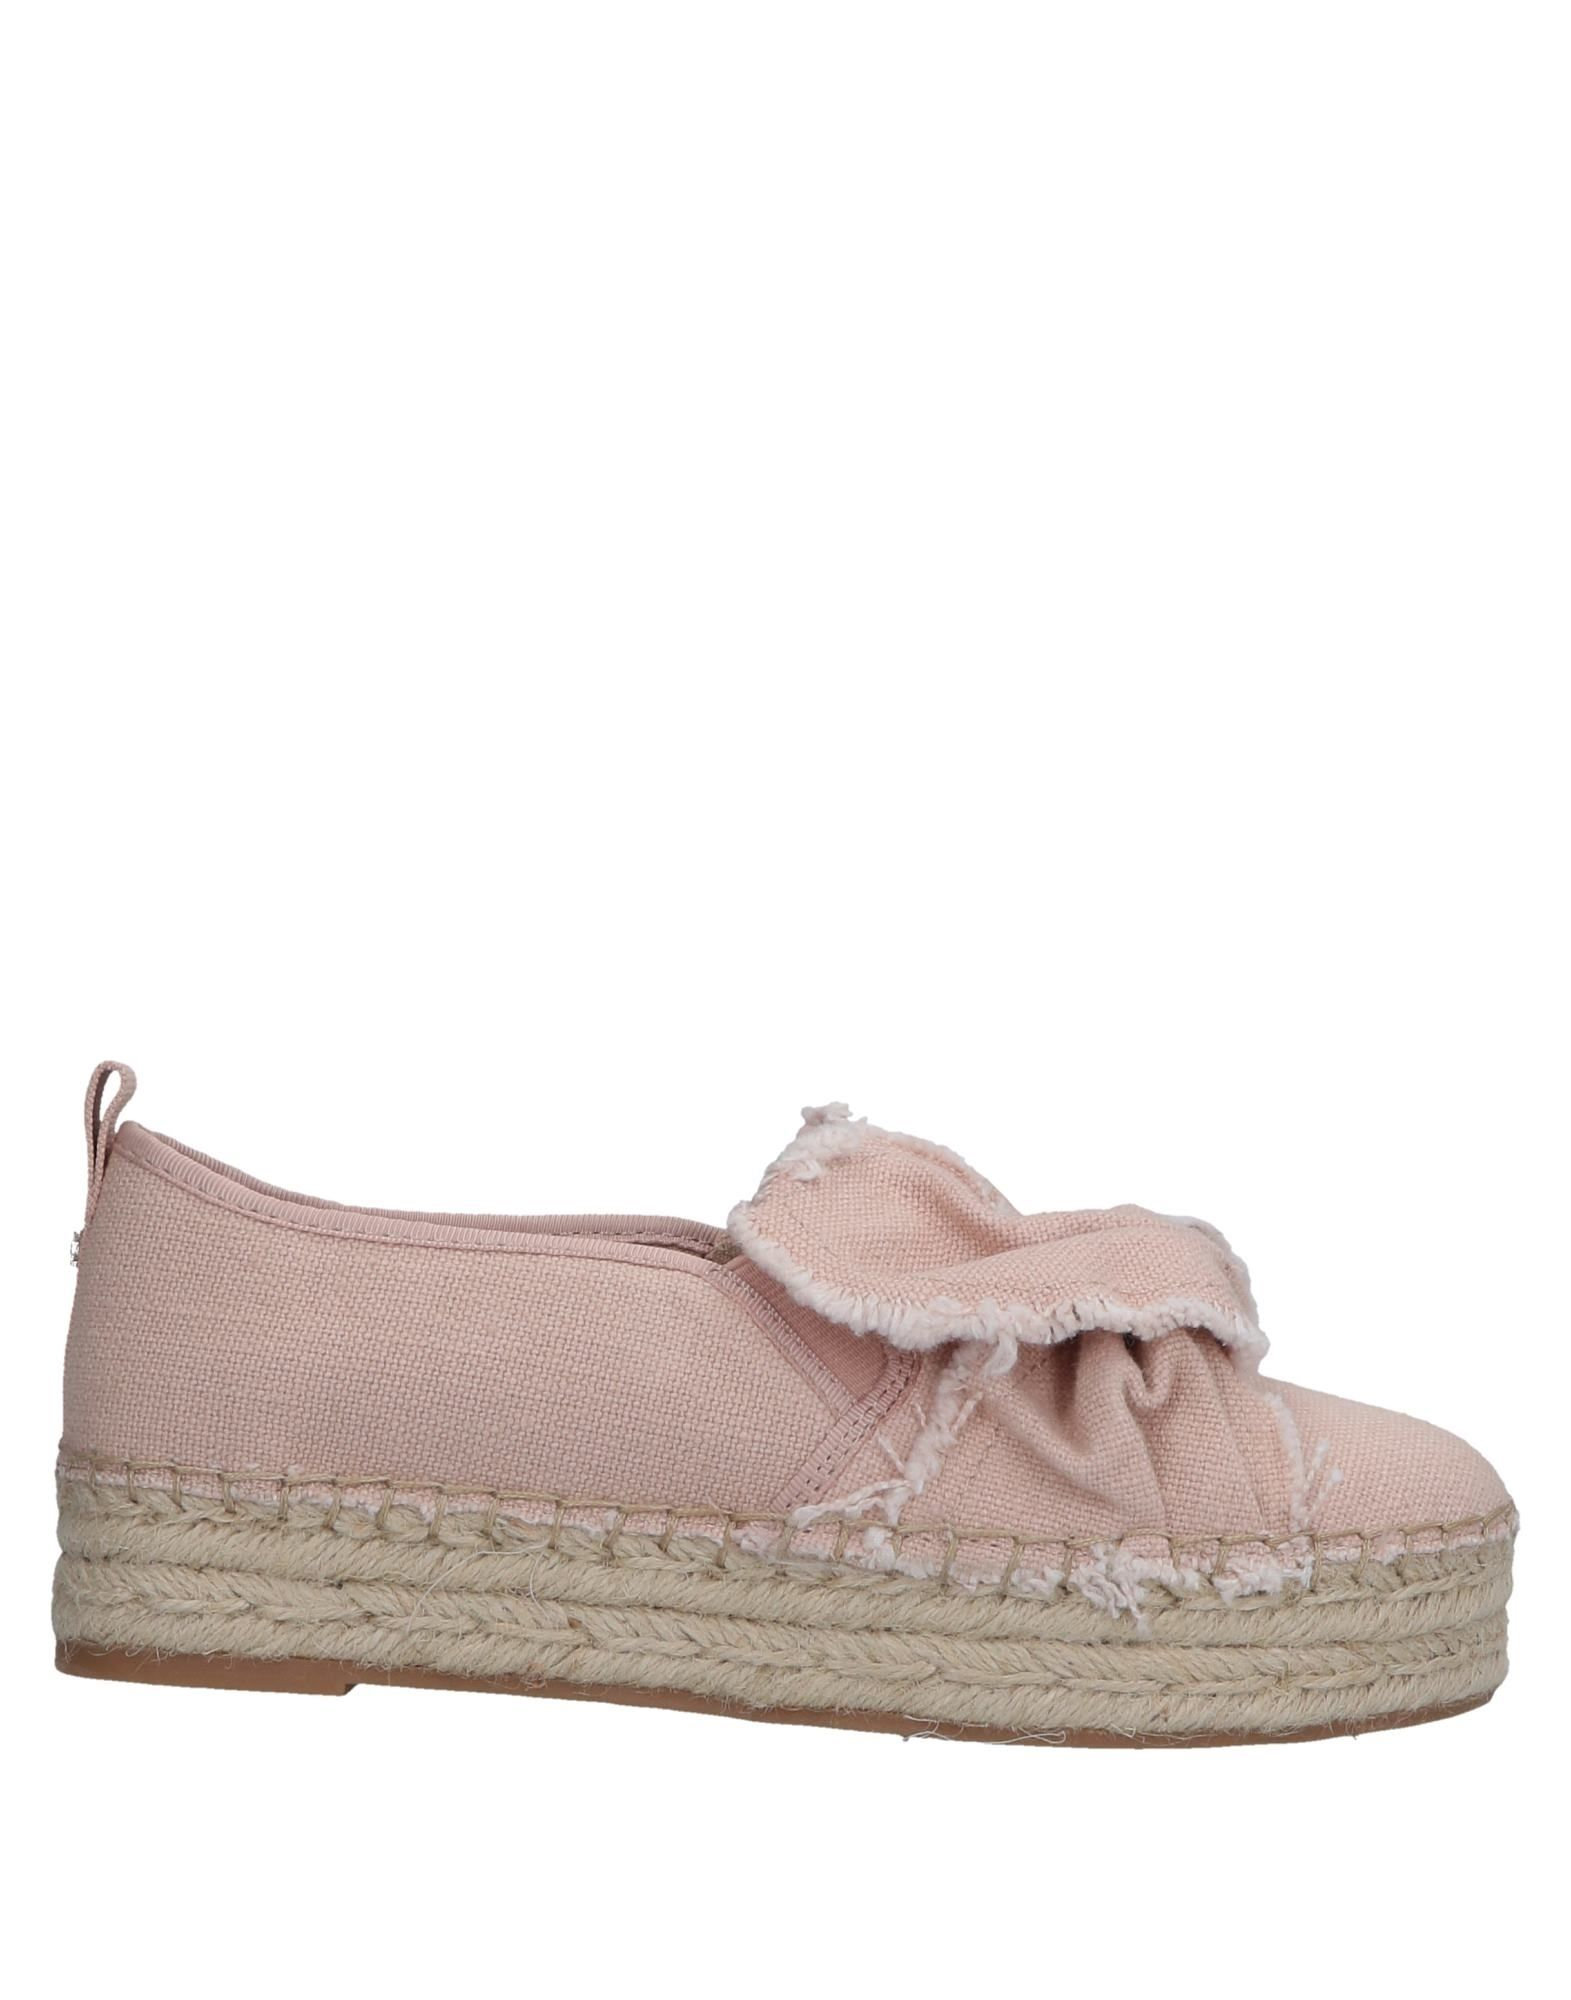 Sam on Edelman Sneakers - Women Sam Edelman Sneakers online on Sam  Australia - 11562313OA 8af001